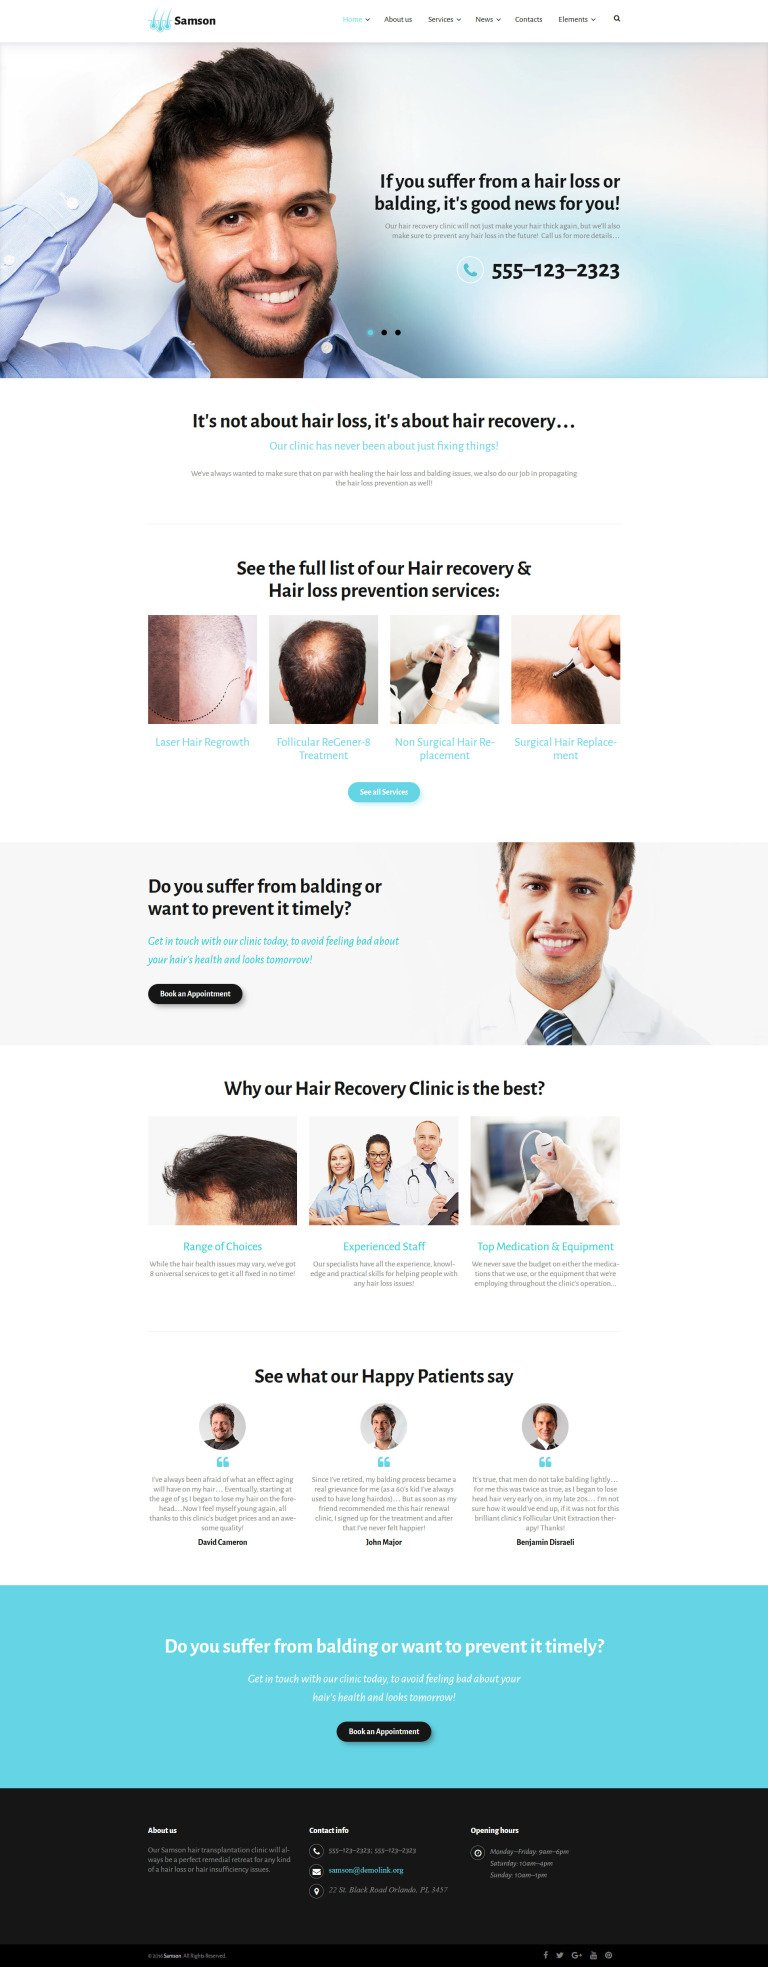 Samson - Hair Recovery Clinic WordPress Theme New Screenshots BIG